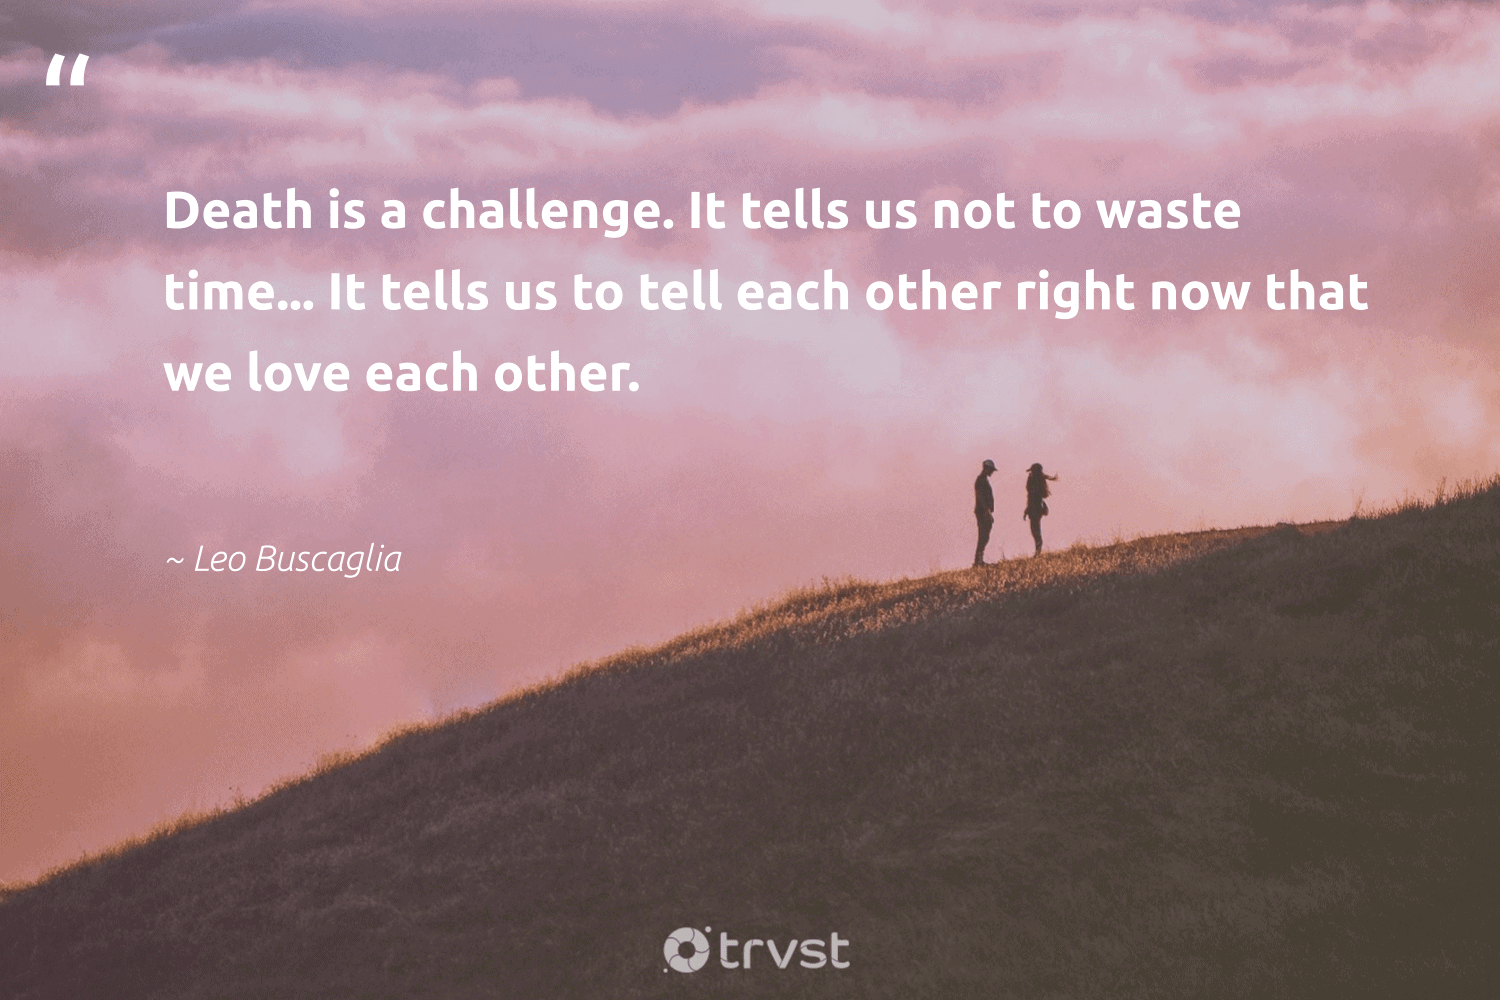 """""""Death is a challenge. It tells us not to waste time... It tells us to tell each other right now that we love each other.""""  - Leo Buscaglia #trvst #quotes #love #waste #nevergiveup #socialimpact #begreat #takeaction #togetherwecan #gogreen #health #beinspired"""